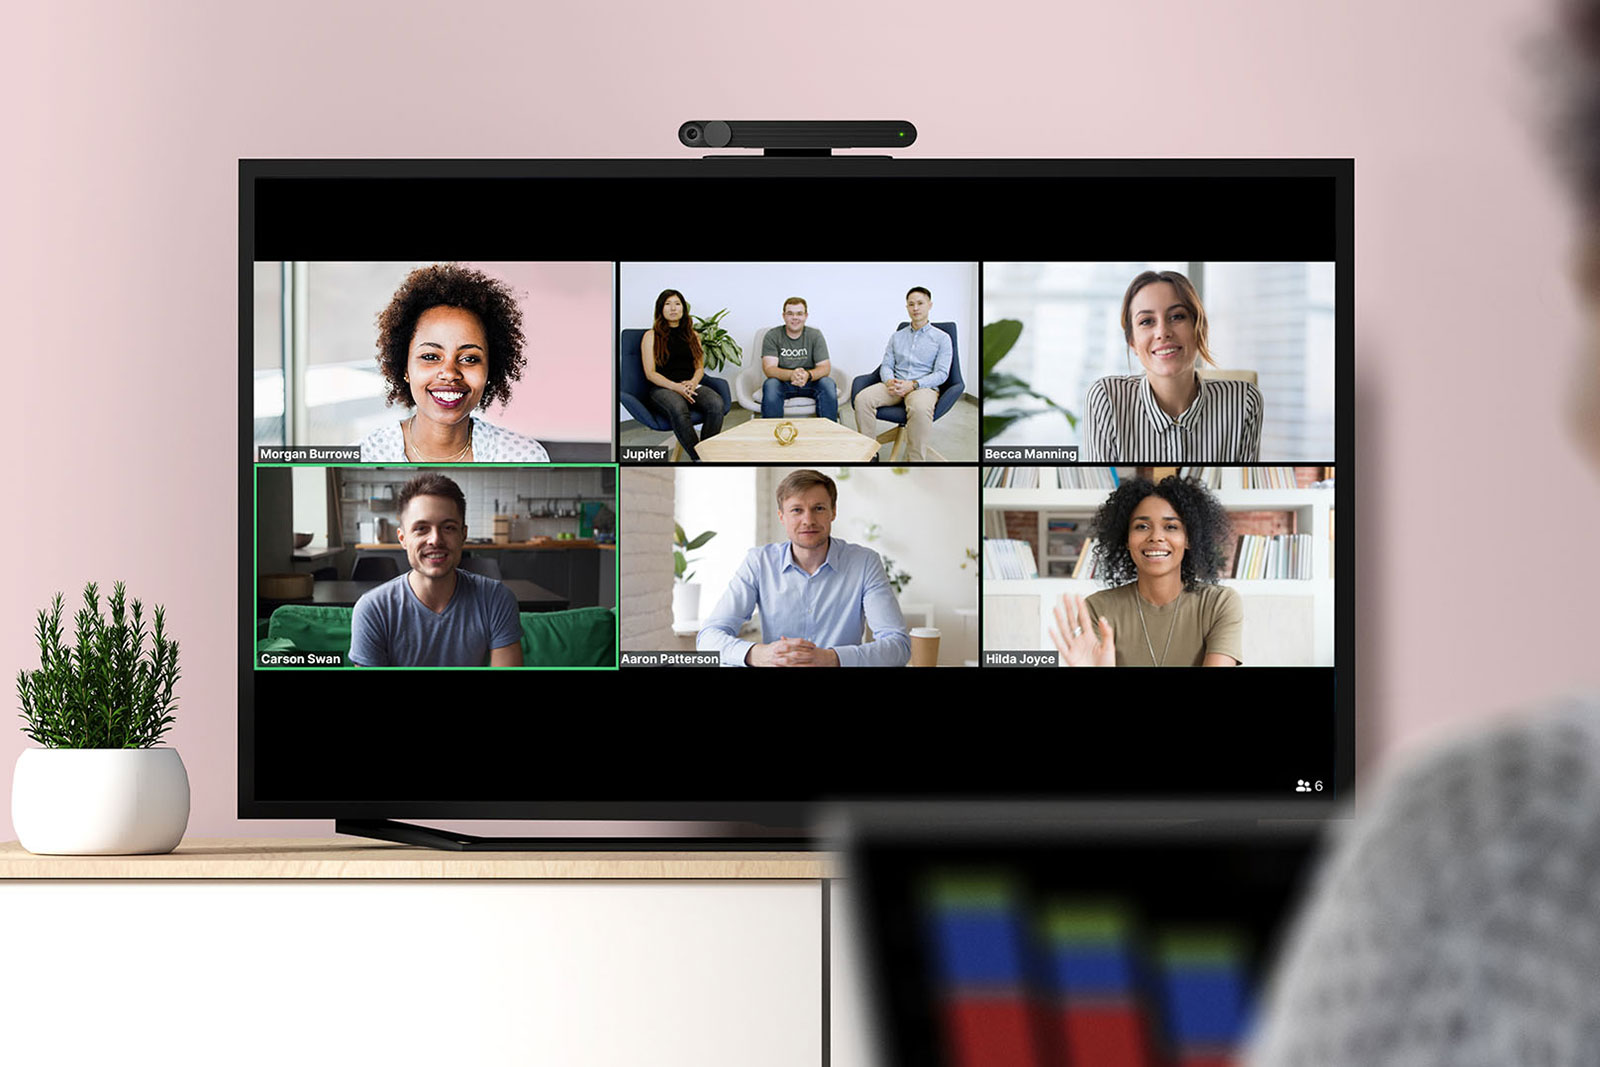 Facebook adds Zoom video calls to Portal for TVs